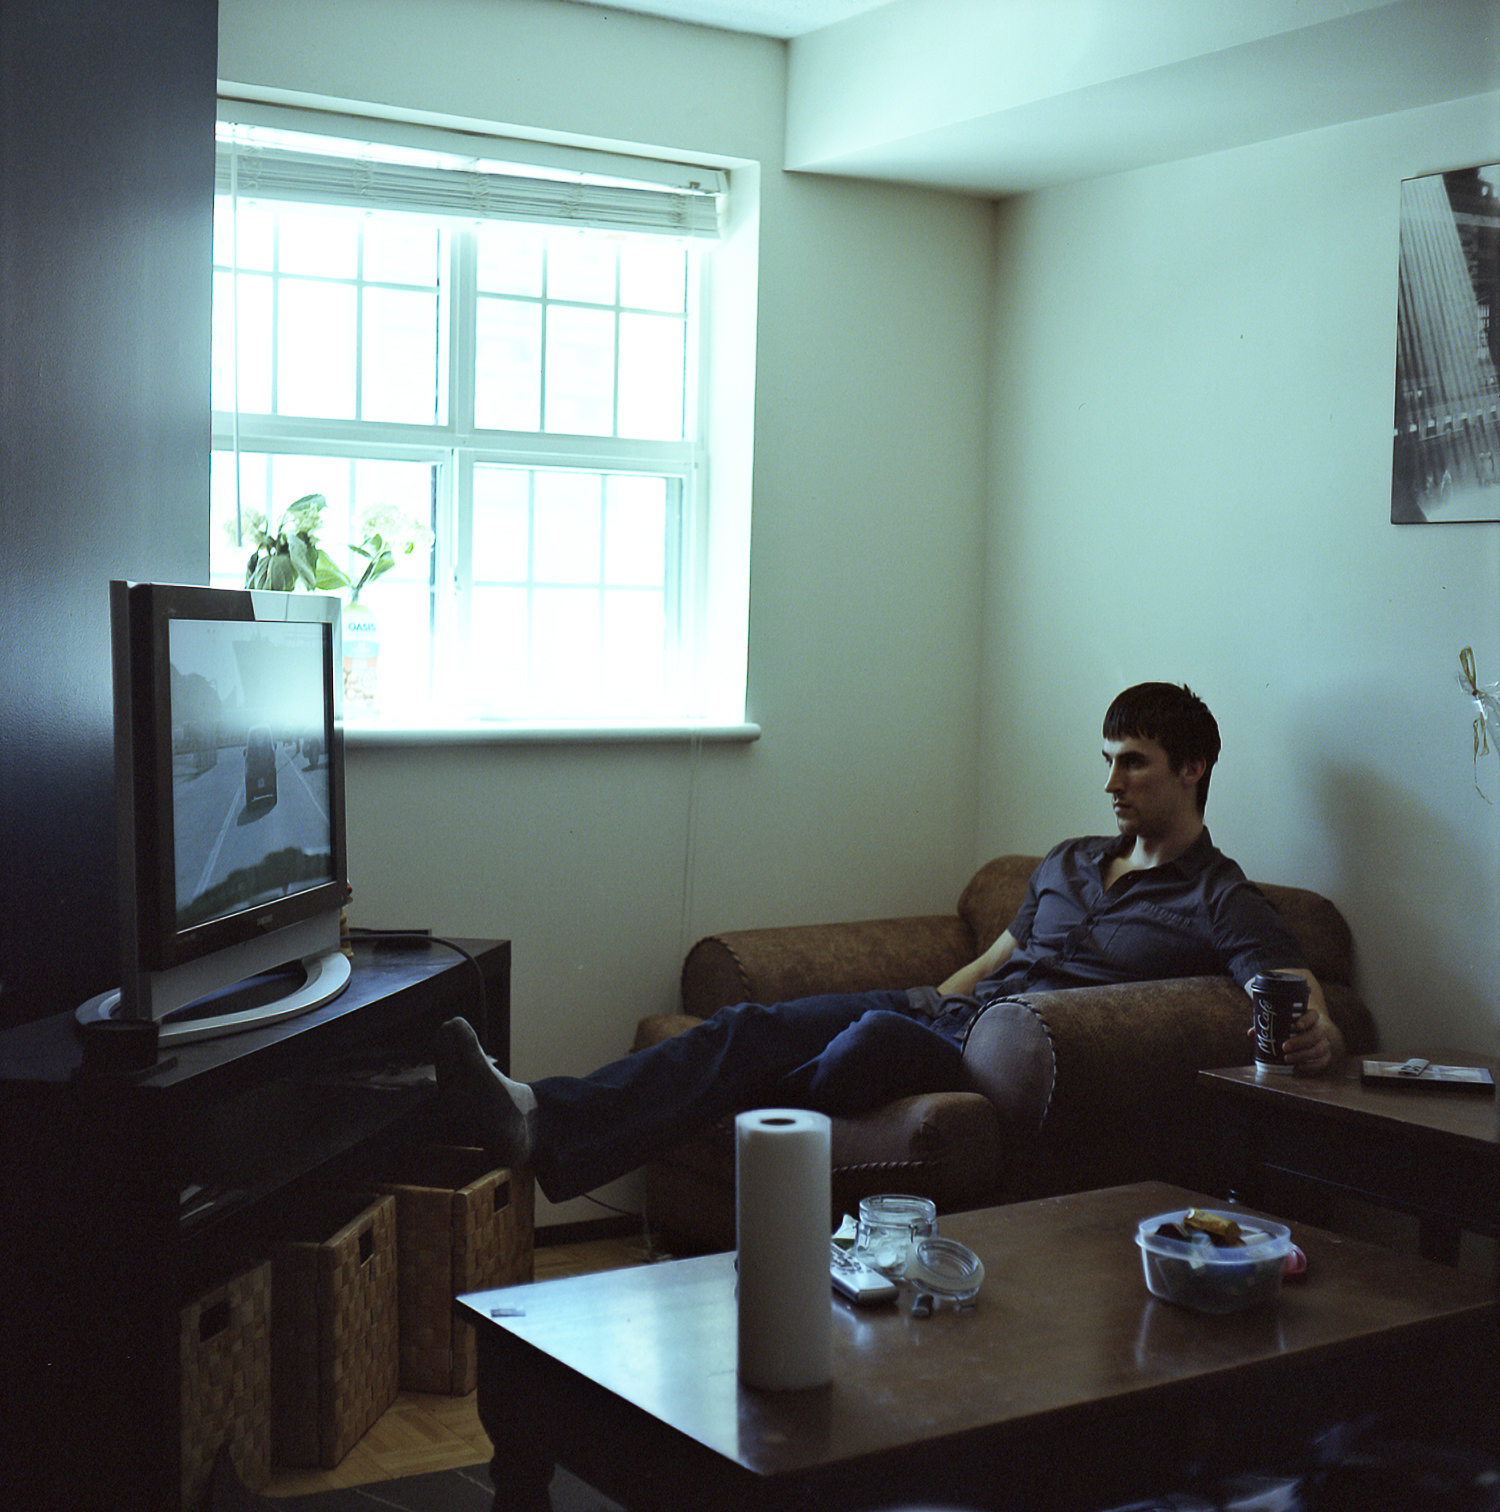 77-Spring-2015-Kodak-Portra-400-Pushed-+3_Candid-Portrait-of-greg-in-our-apartment.jpg